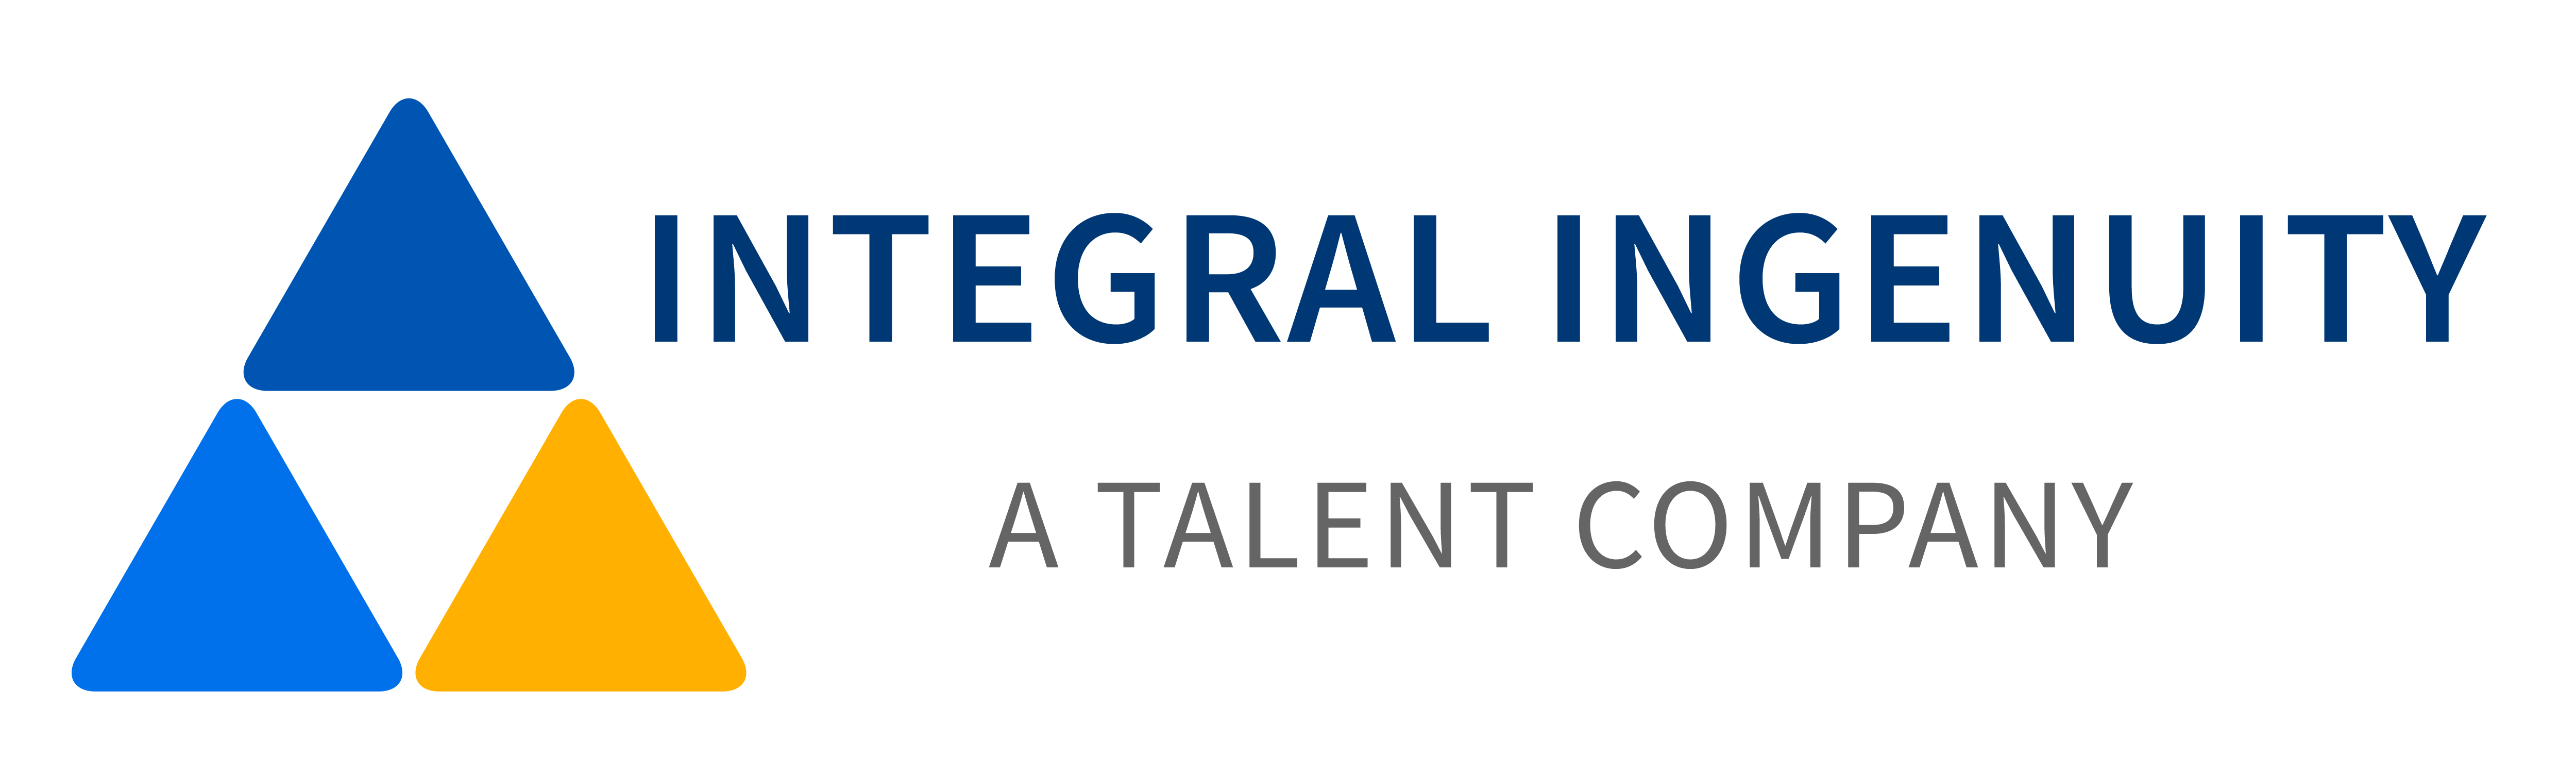 Integral Ingenuity | A Talent Company